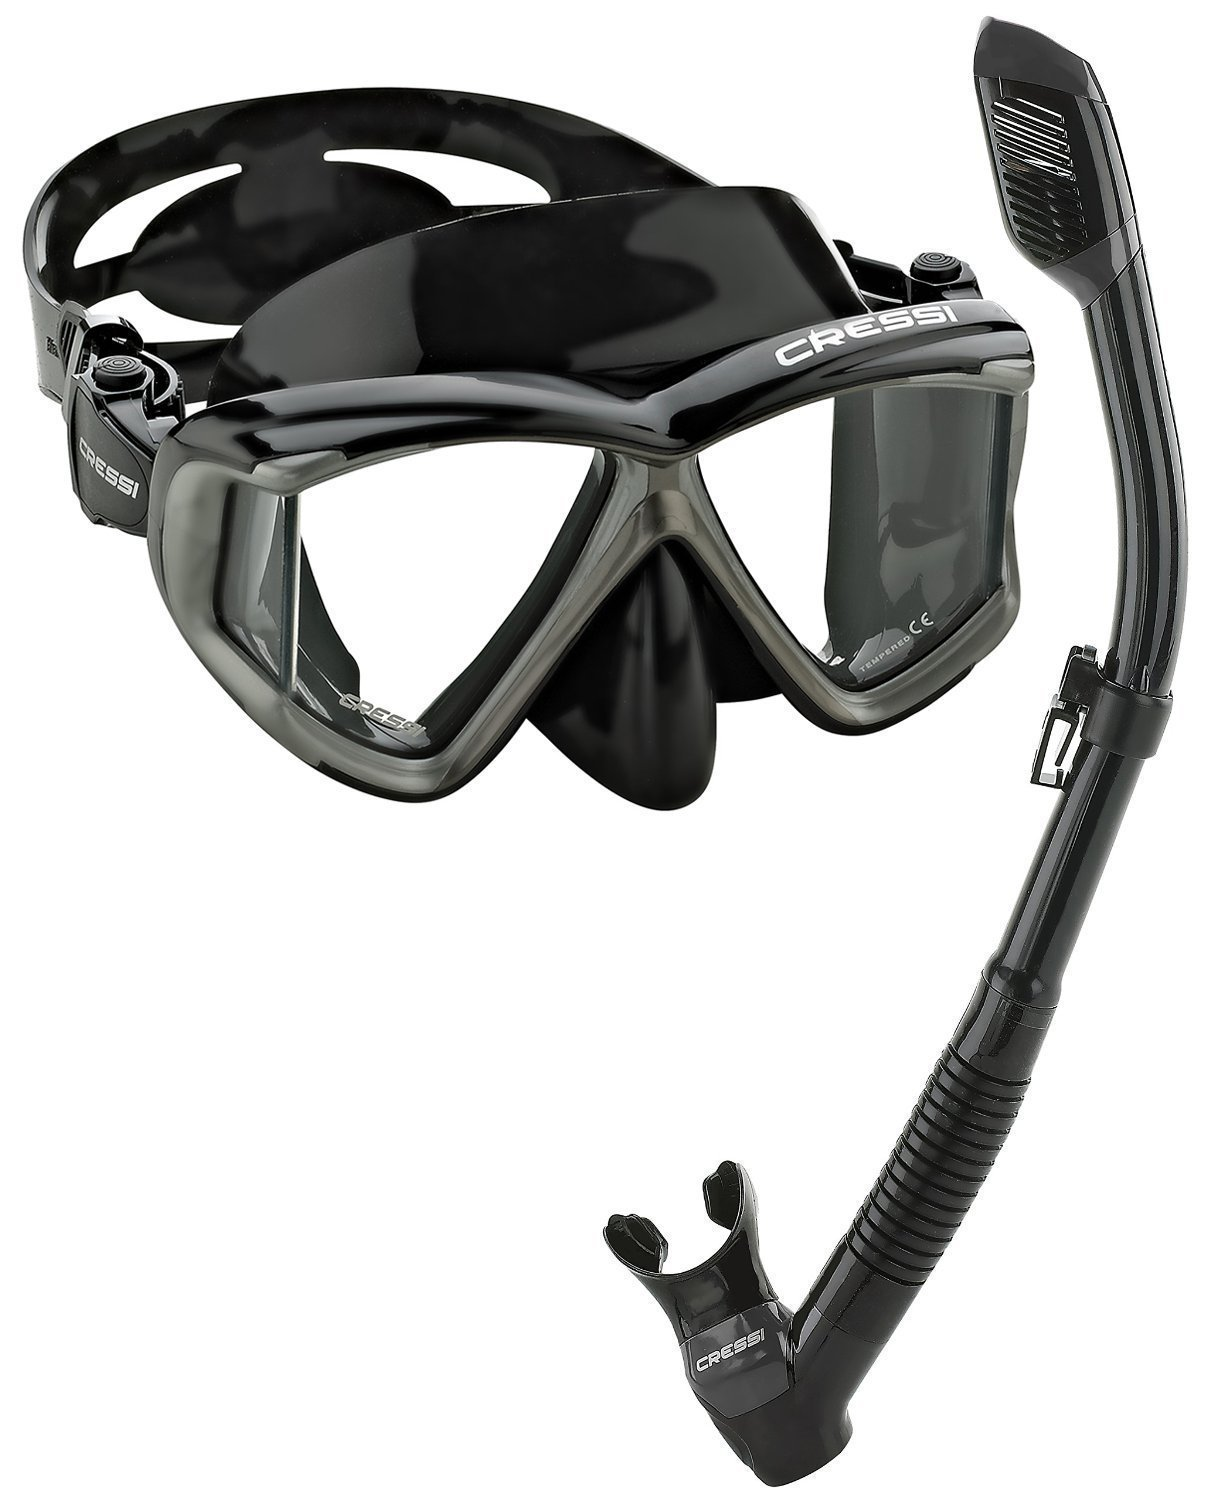 Cressi Panoramic Wide View Mask Dry Snorkel Set, Black/Silver by Cressi